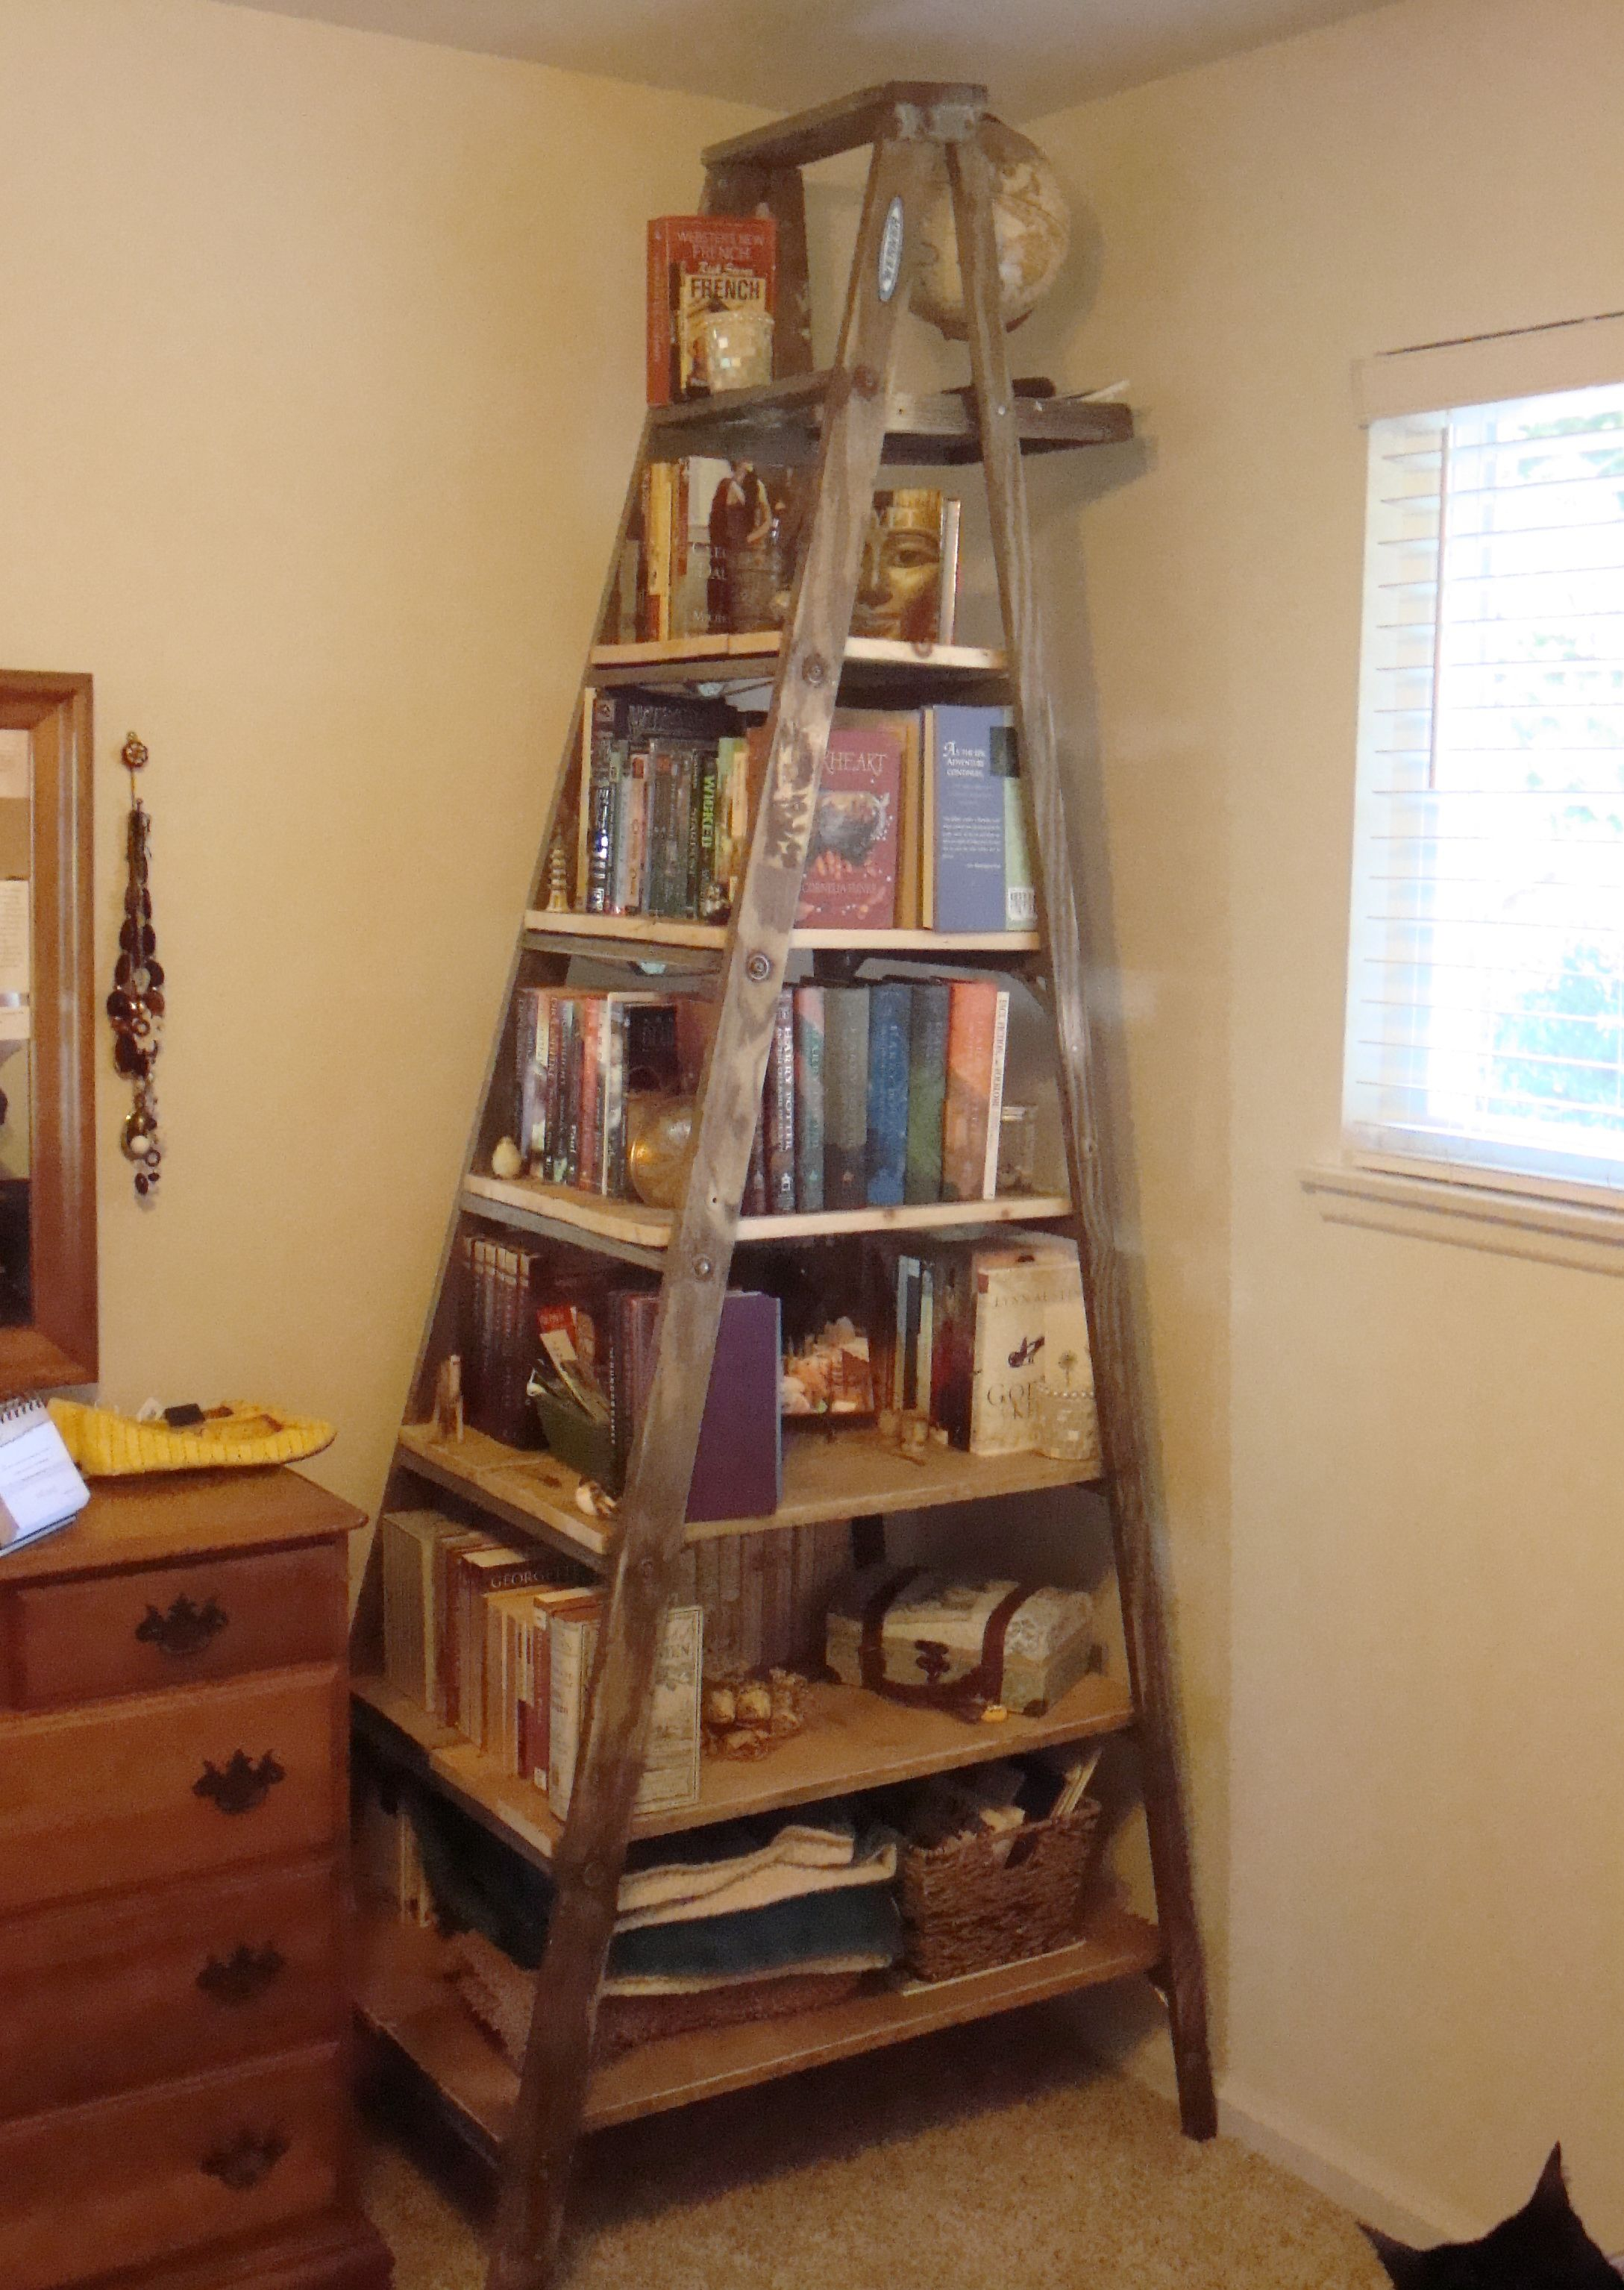 Ladder bookcase see picture - I Made This Book Shelf Out Of An Old 8 Ft Wooden Ladder And Some Wooden